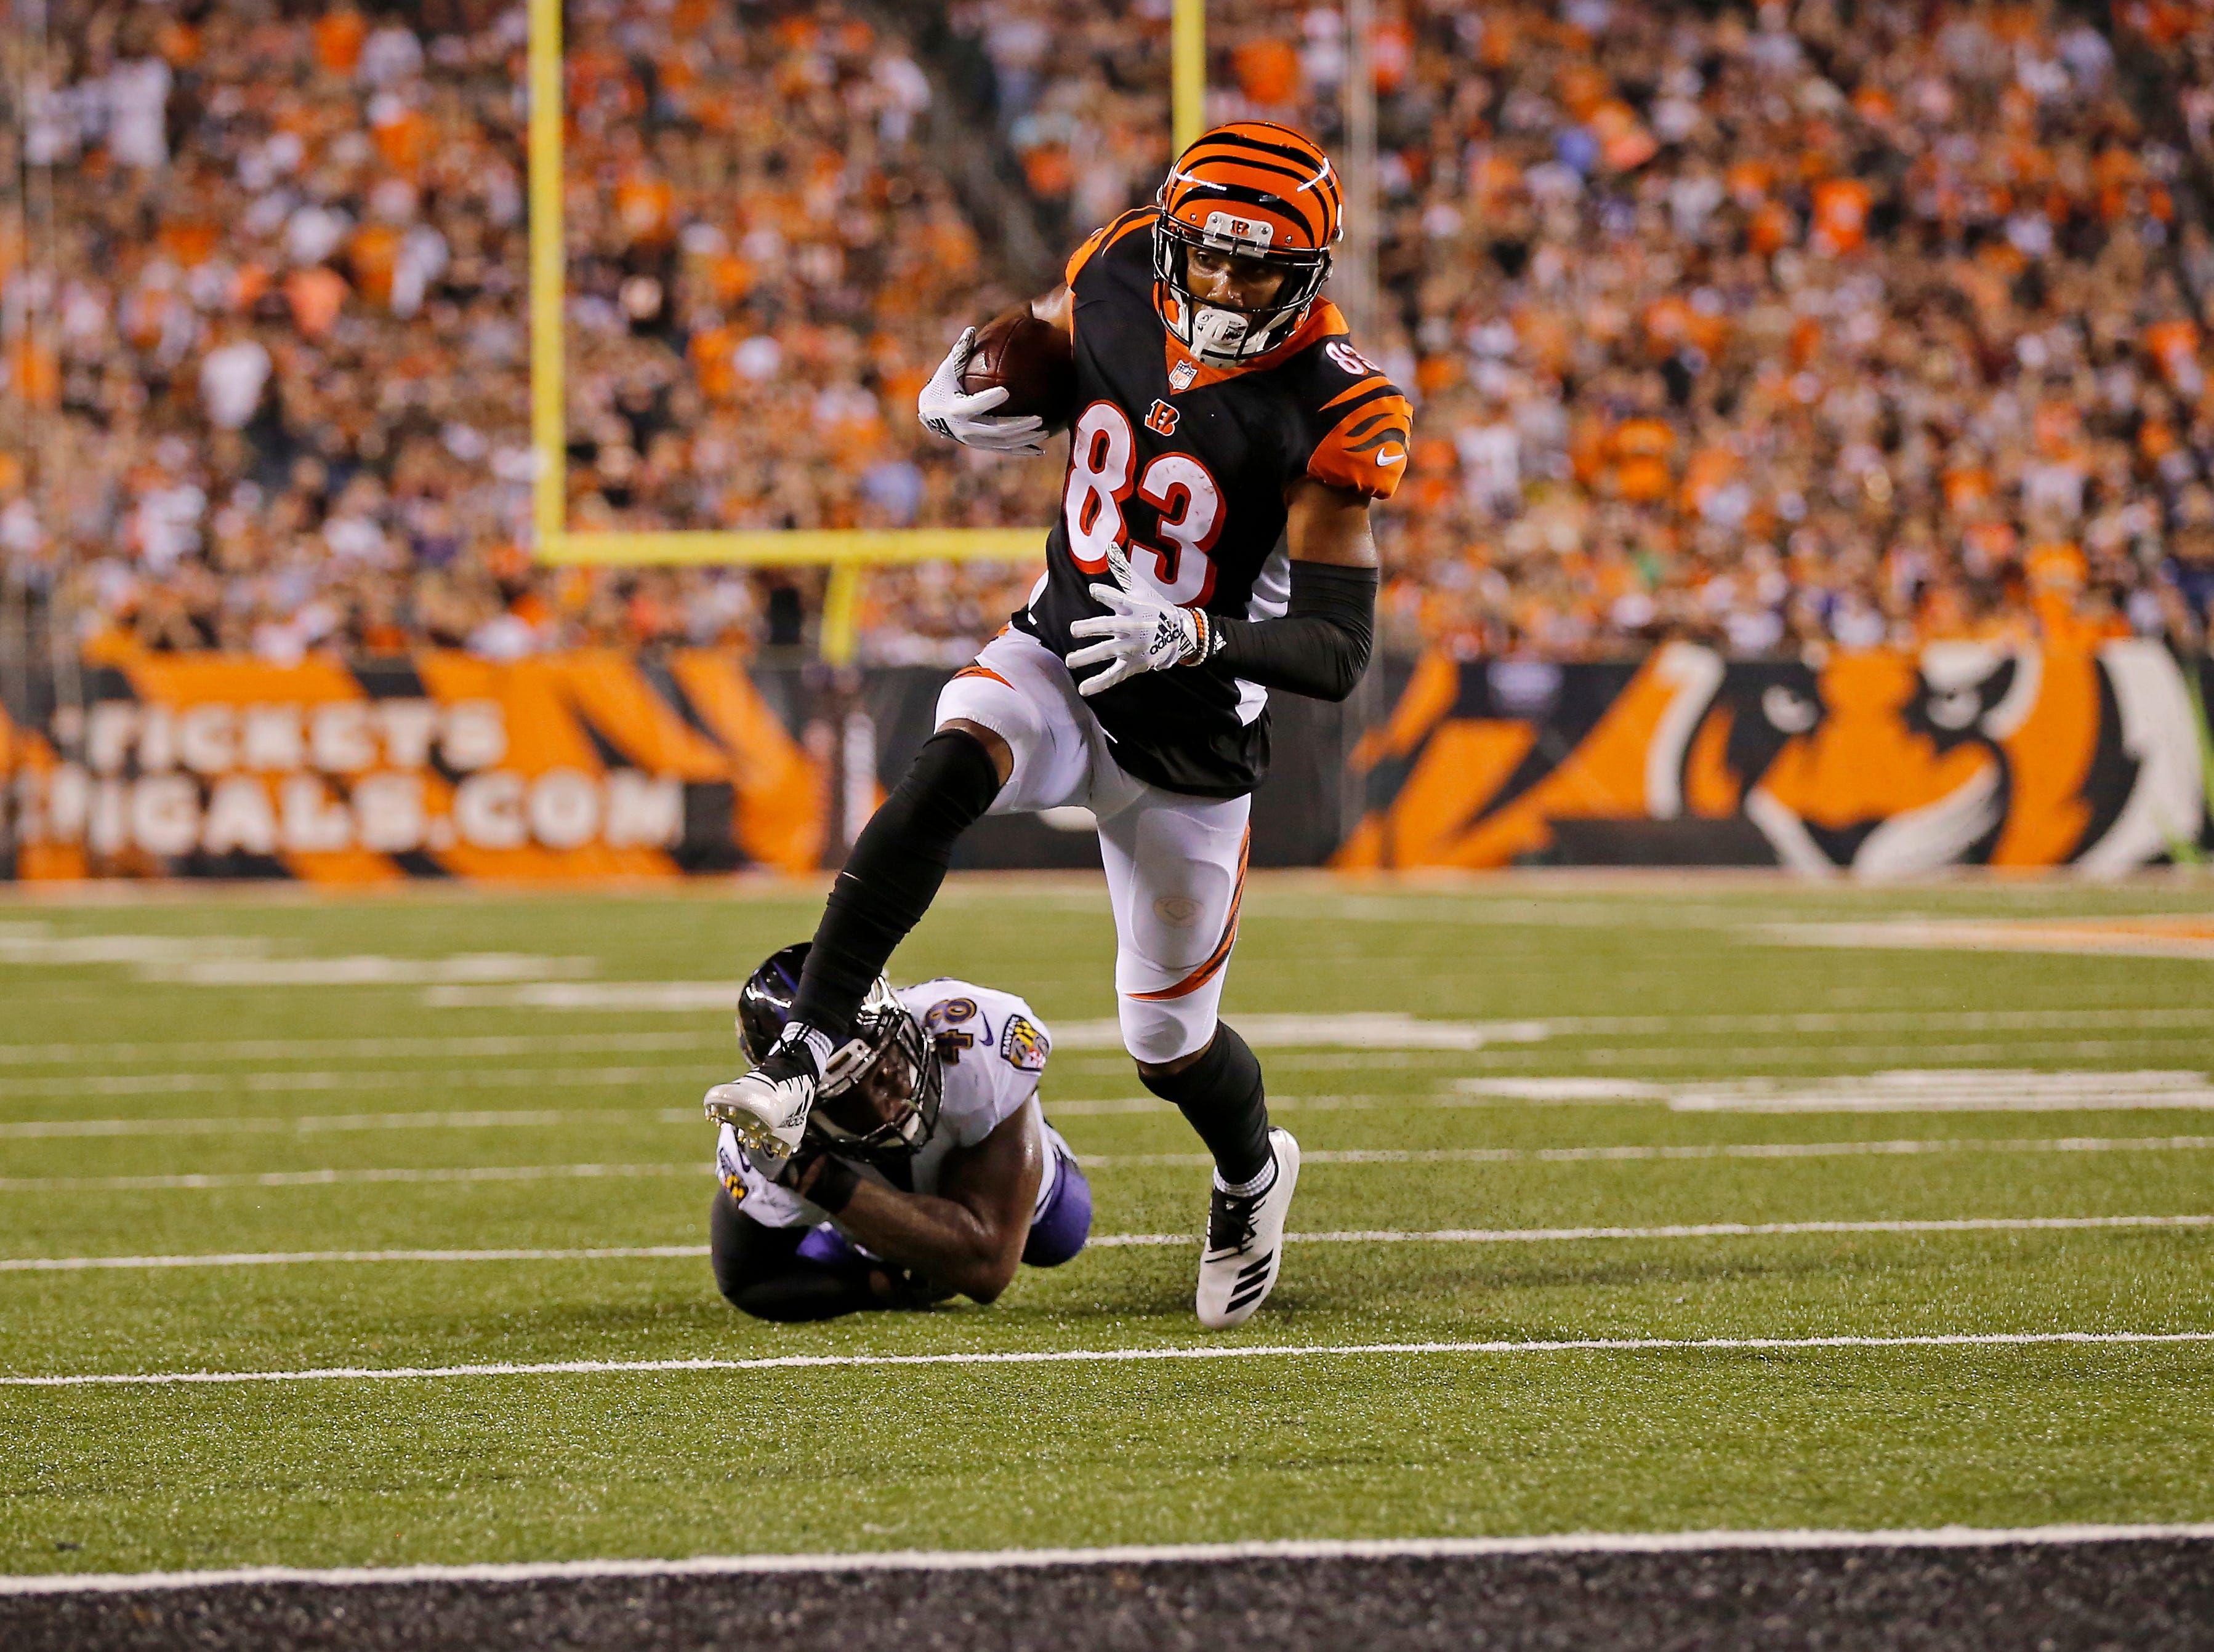 Cincinnati Bengals wide receiver Tyler Boyd (83) breaks a tackle from Baltimore Ravens linebacker Patrick Onwuasor (48) on his way to a touchdown in the second quarter of the NFL Week 2 game between the Cincinnati Bengals and the Baltimore Ravens at Paul Brown Stadium in downtown Cincinnati on Thursday, Sept. 13, 2018. The Bengals led 28-14 at halftime.